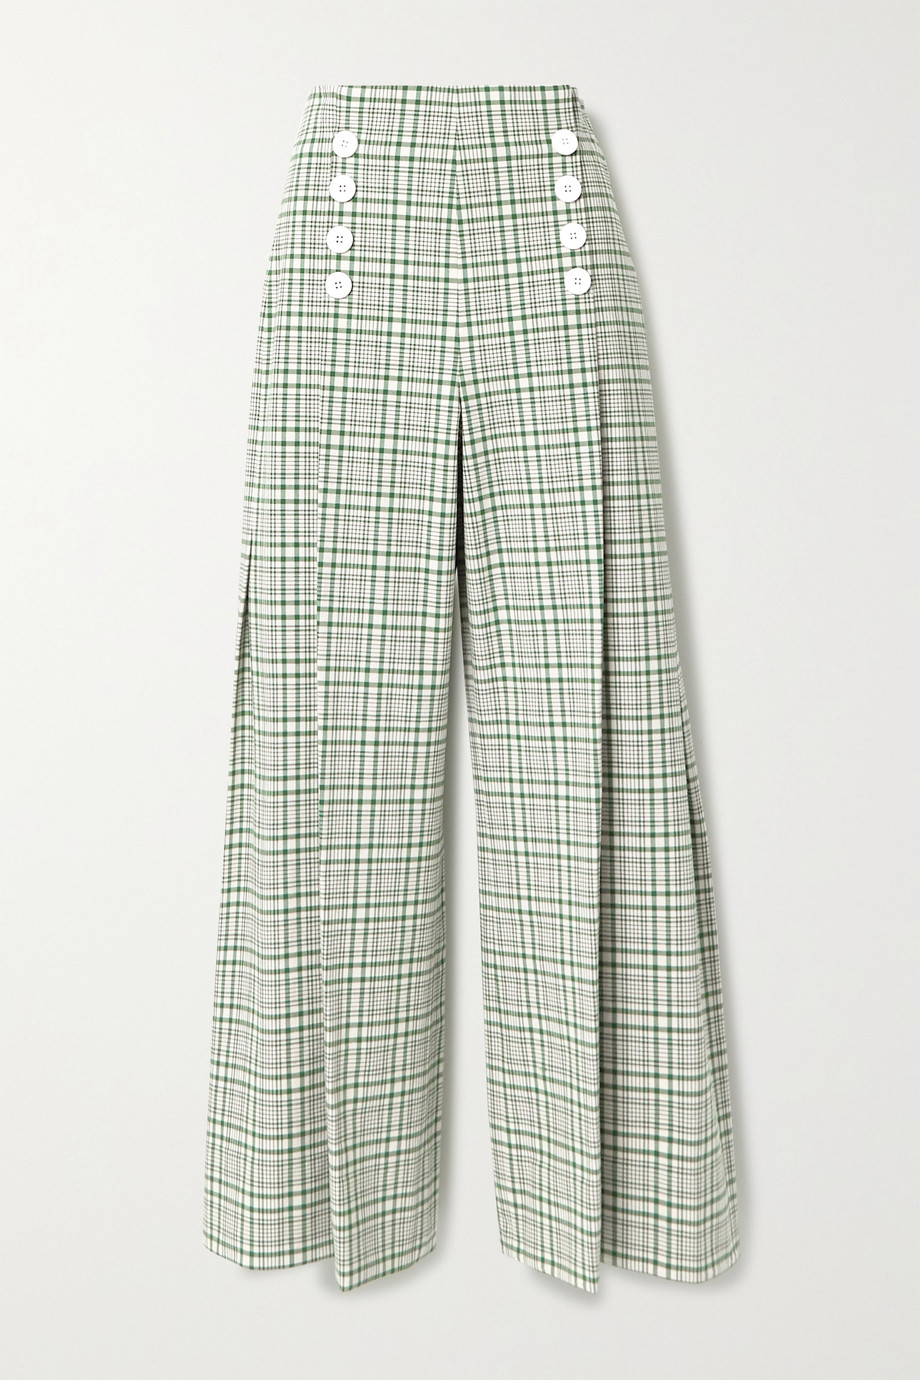 Rosie Assoulin Pleated checked cotton-blend canvas wide-leg pants